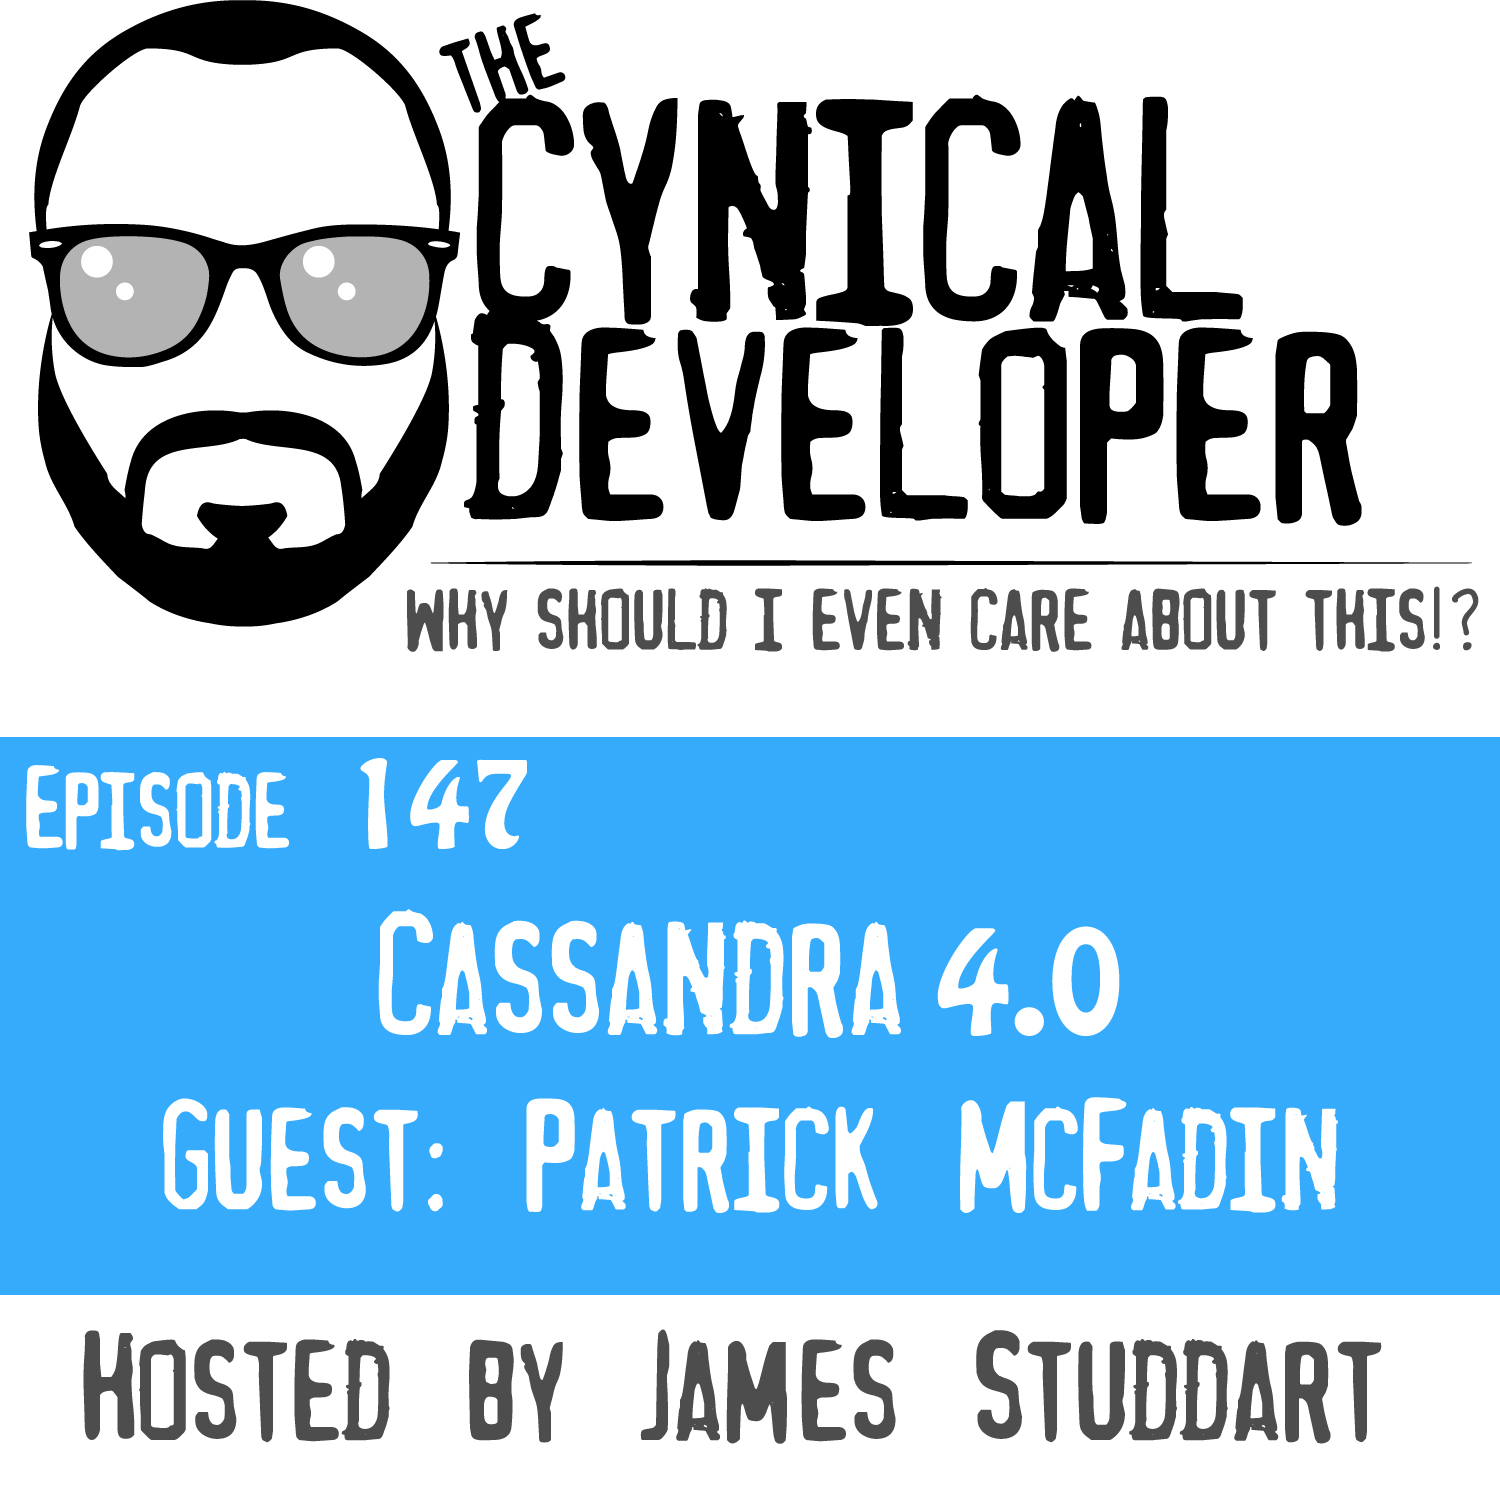 Episode 147 - Cassandra 4.0